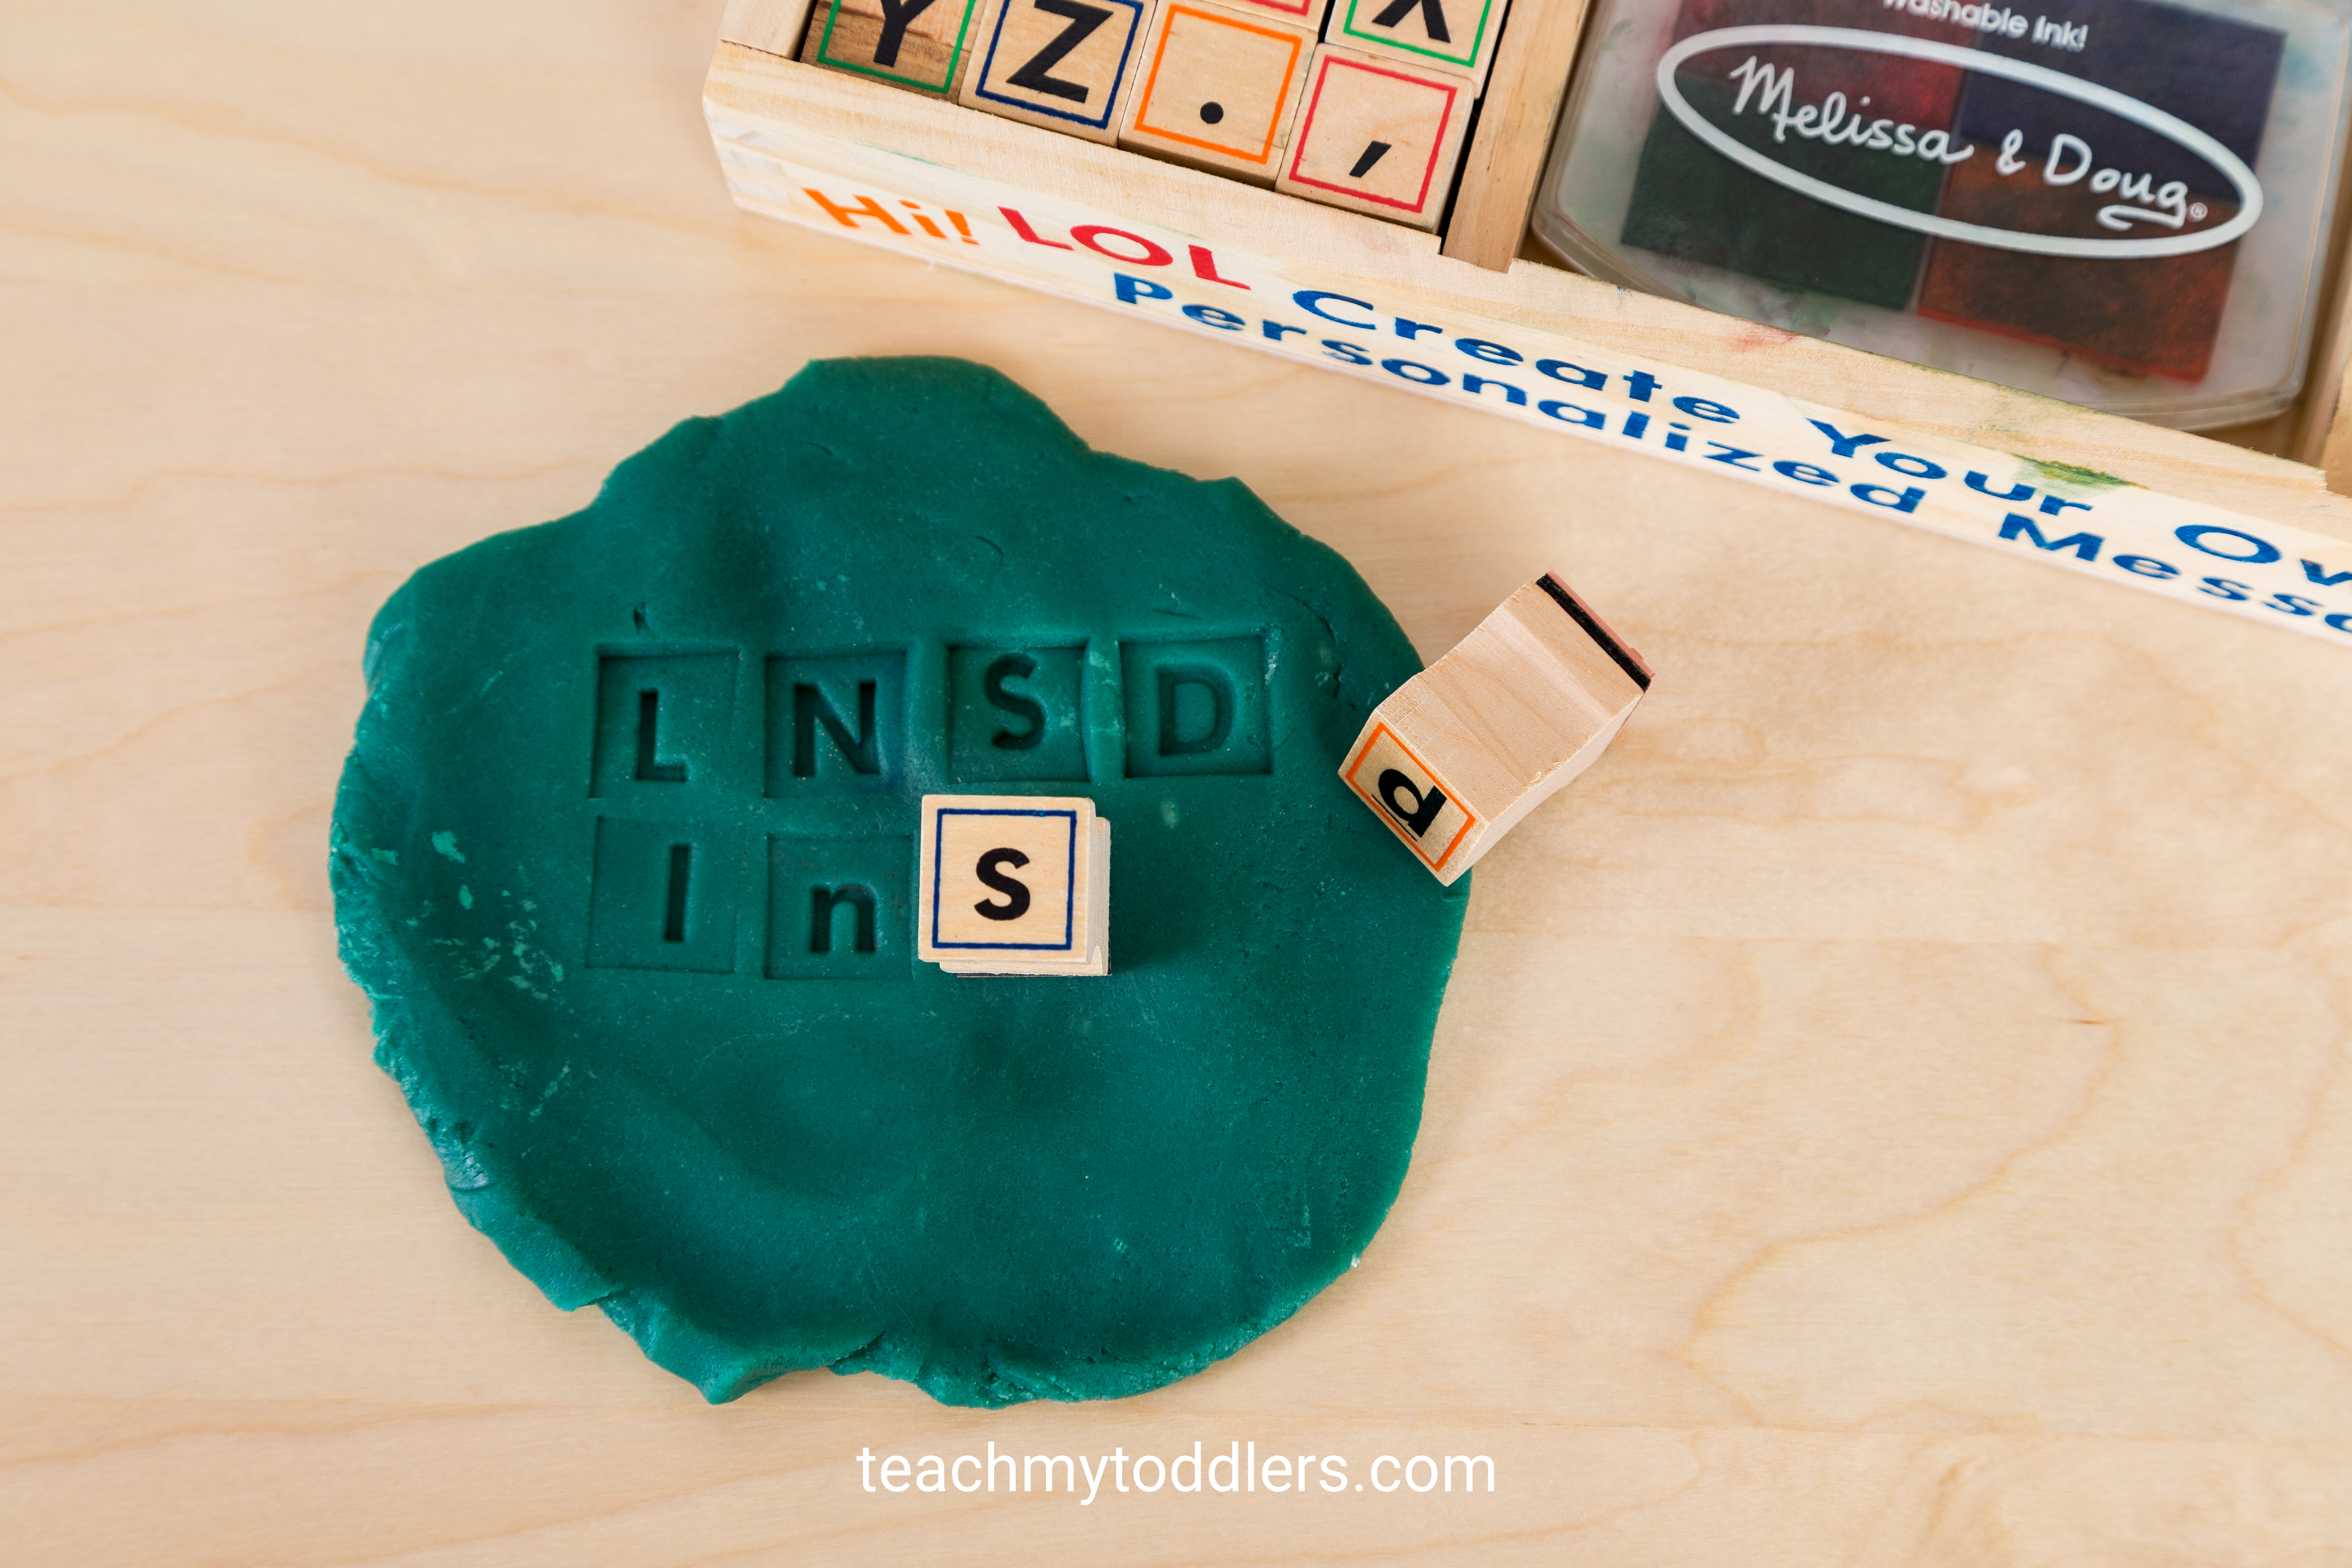 These alphabet stamps are a fun way to teach your toddlers letters